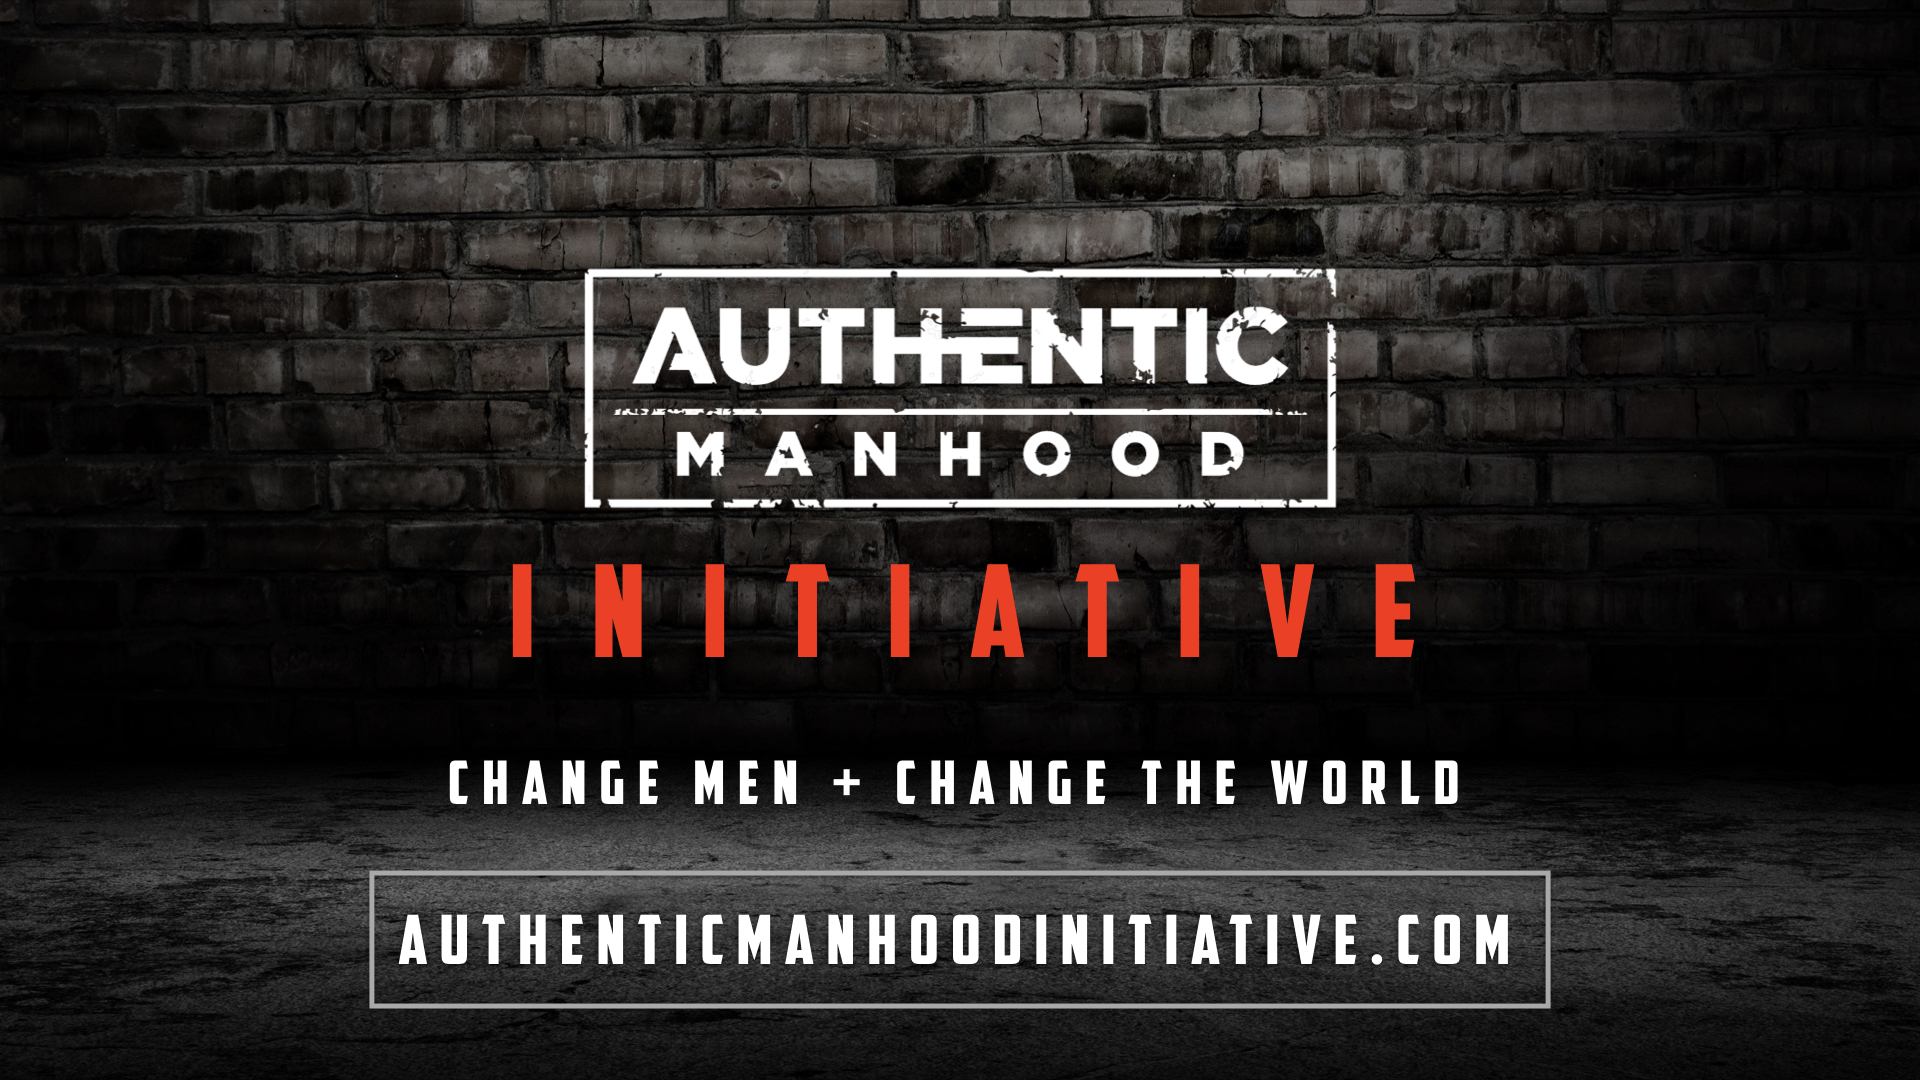 Authentic Manhood Initiative